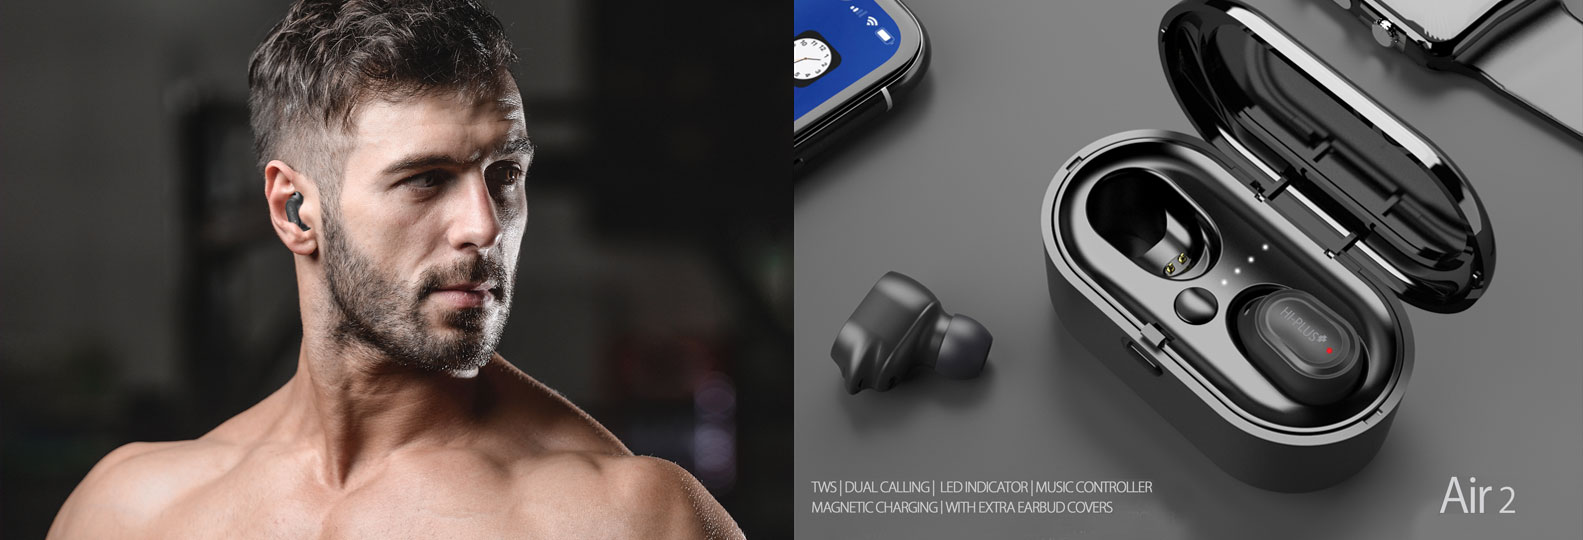 Mobile Accessories shop of Bluetooth headphone, headset